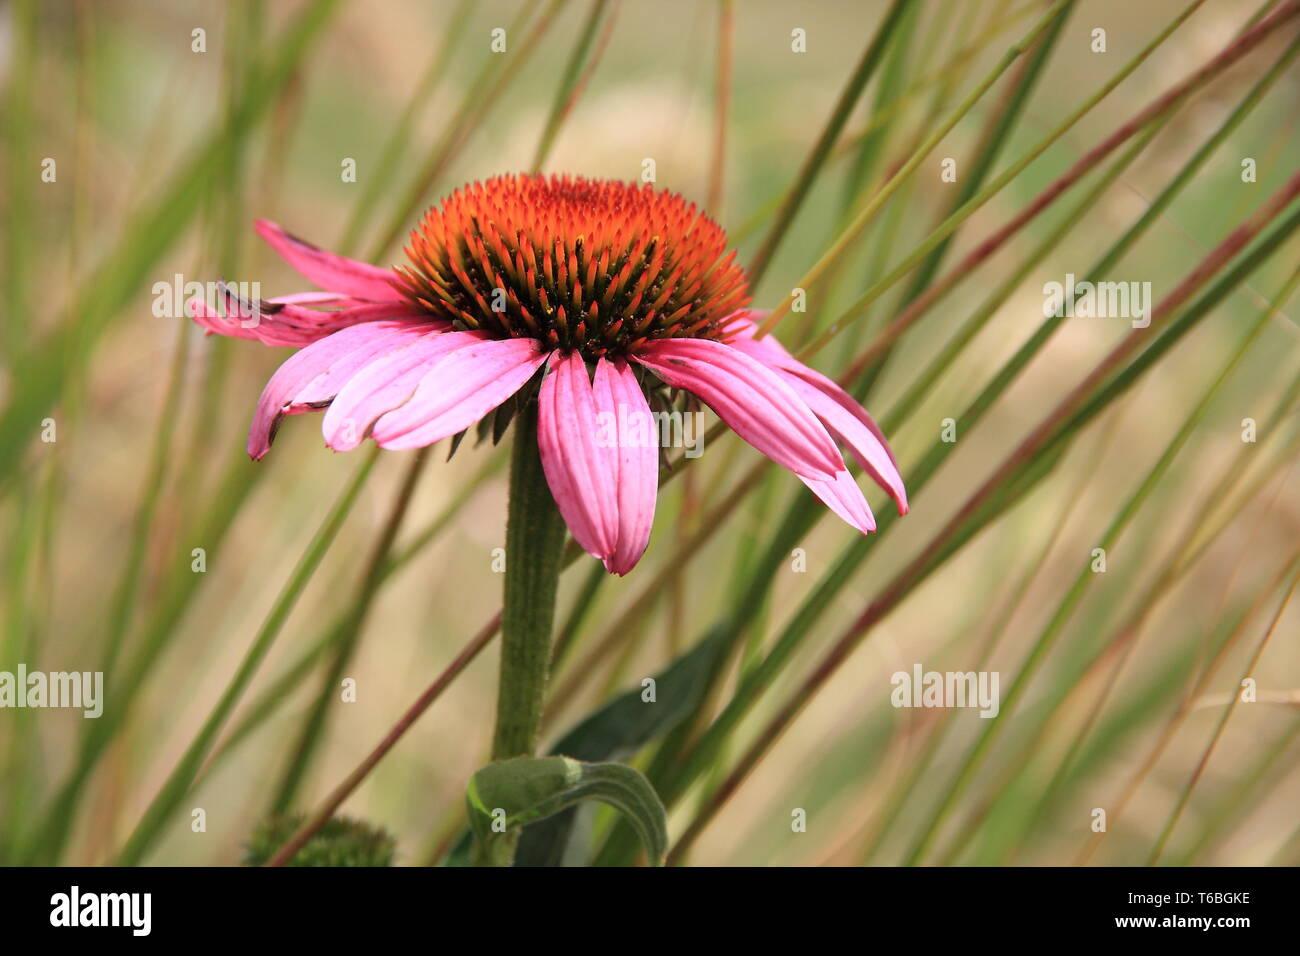 Red coneflower in front of blades of grass - Stock Image